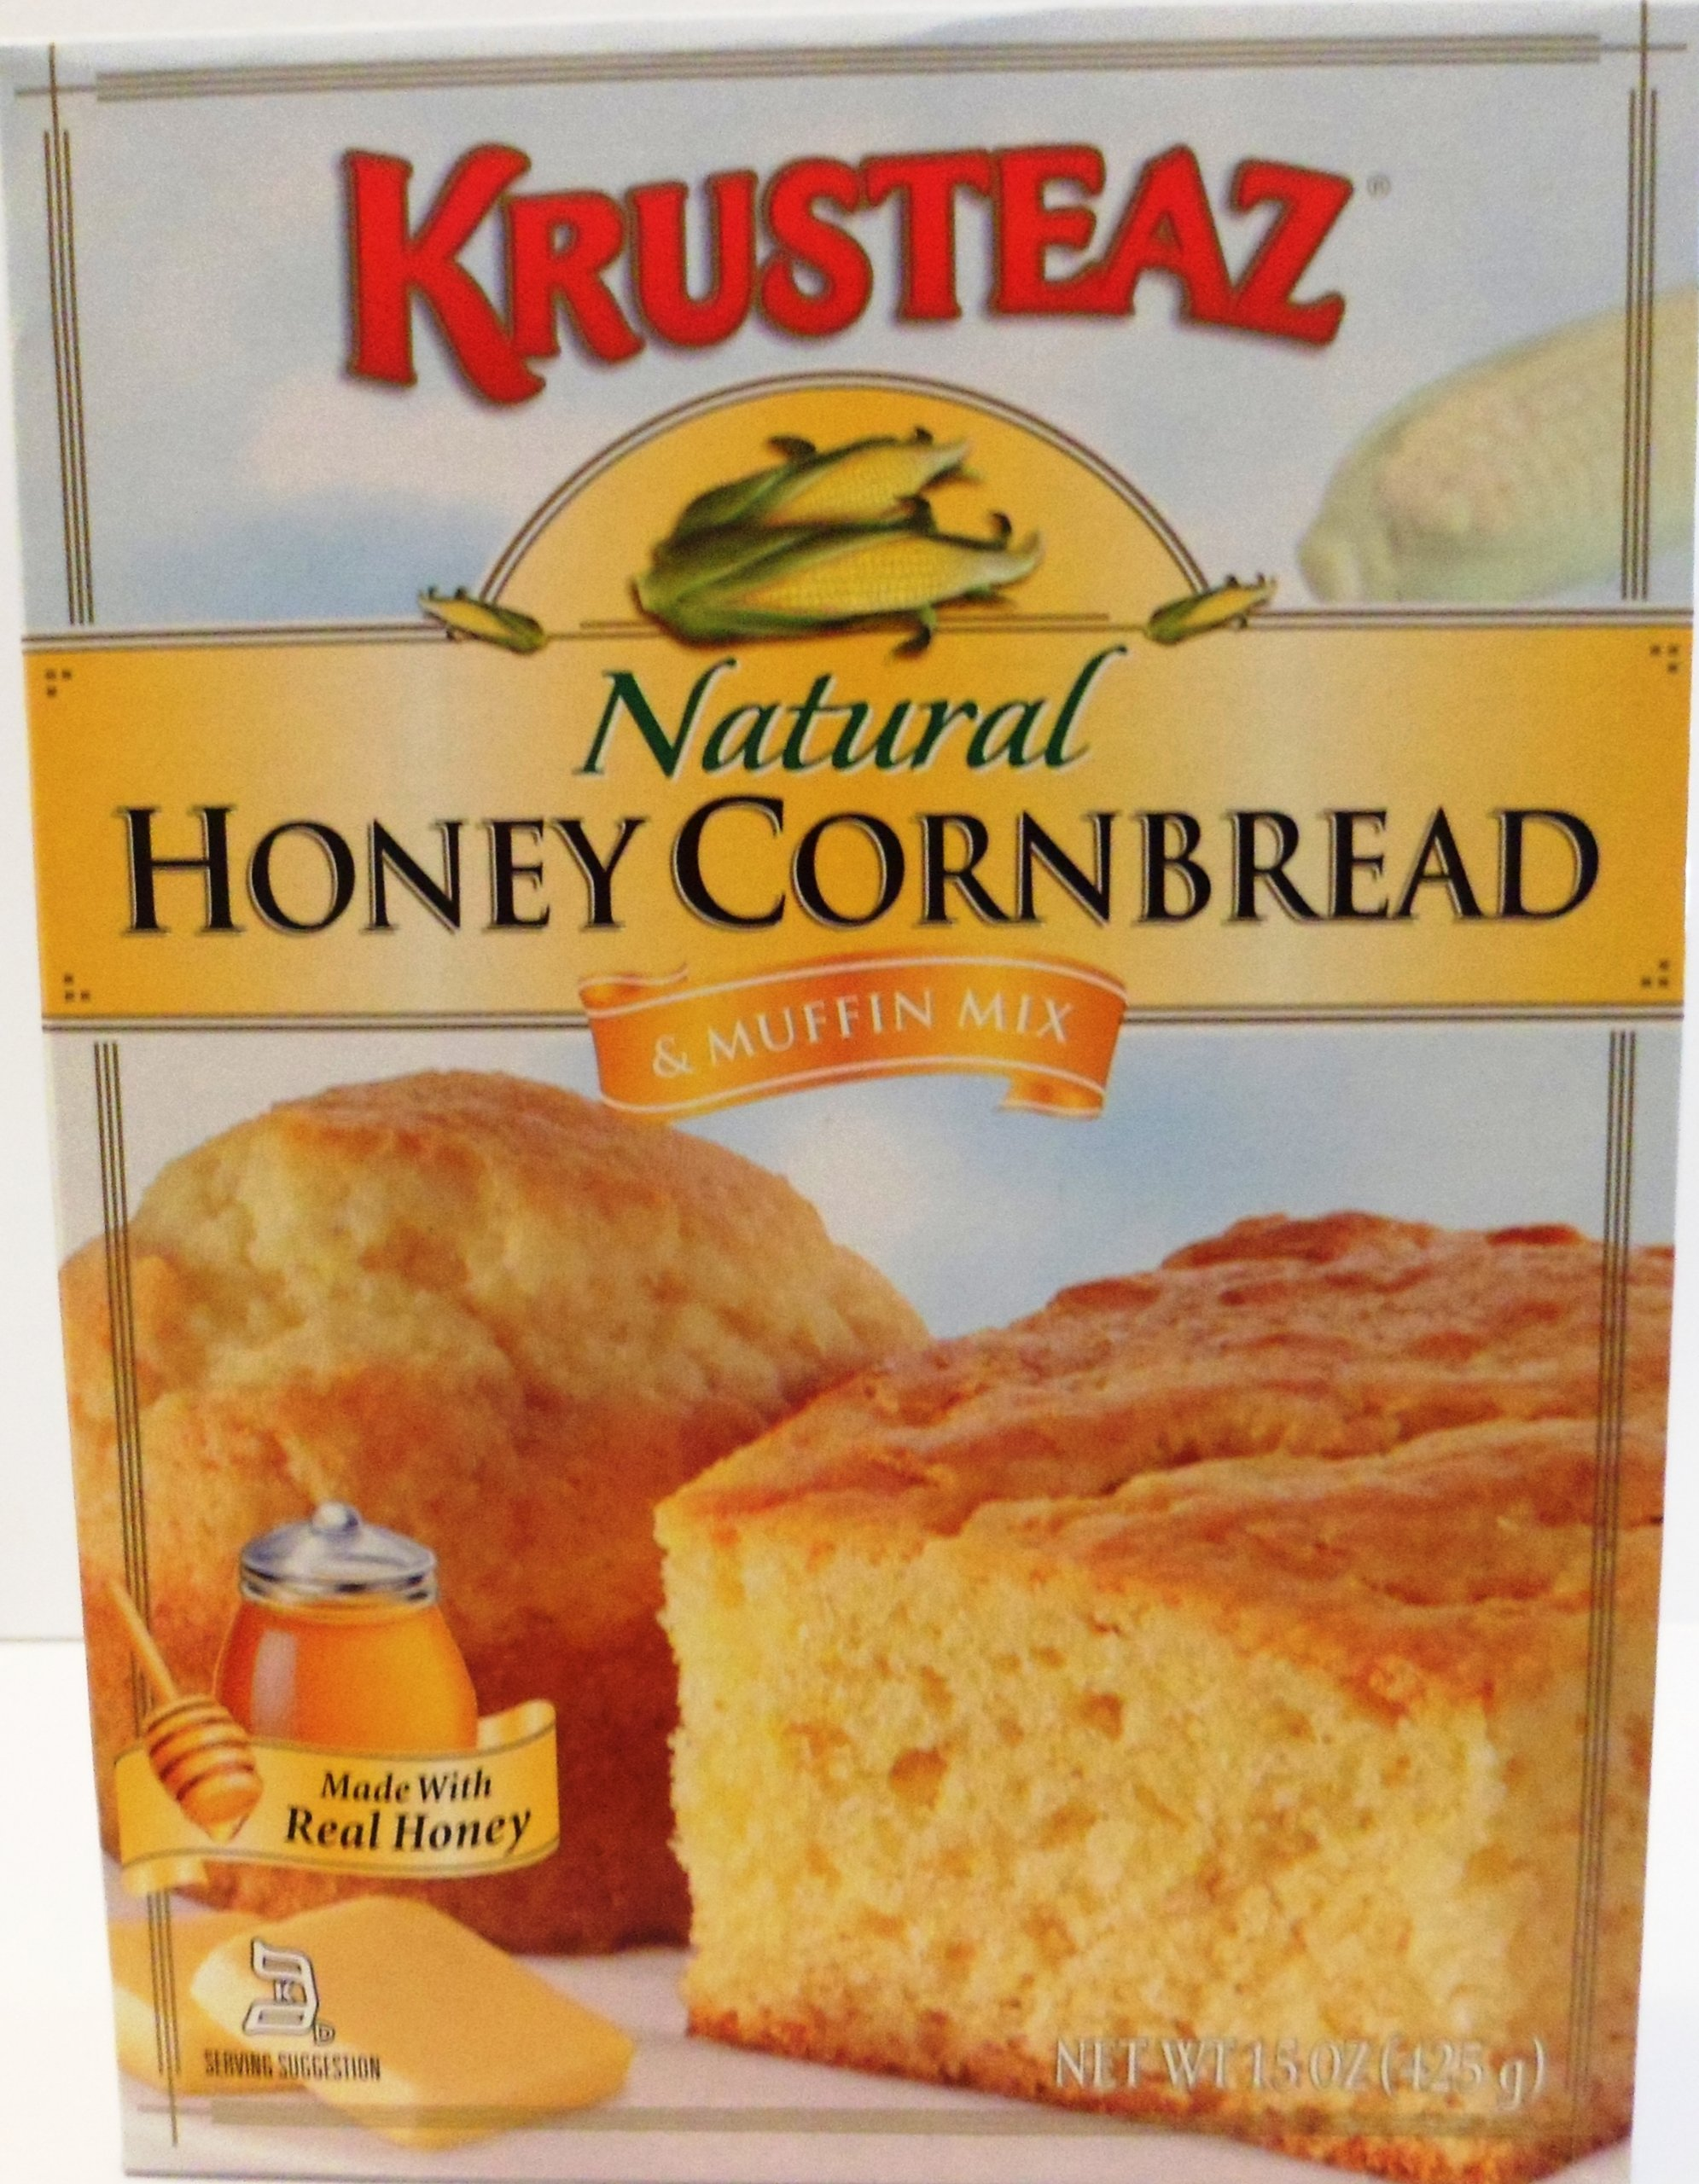 Krusteaz Natural Honey Cornbread & Muffin Mix 15 OZ (Pack of 6)